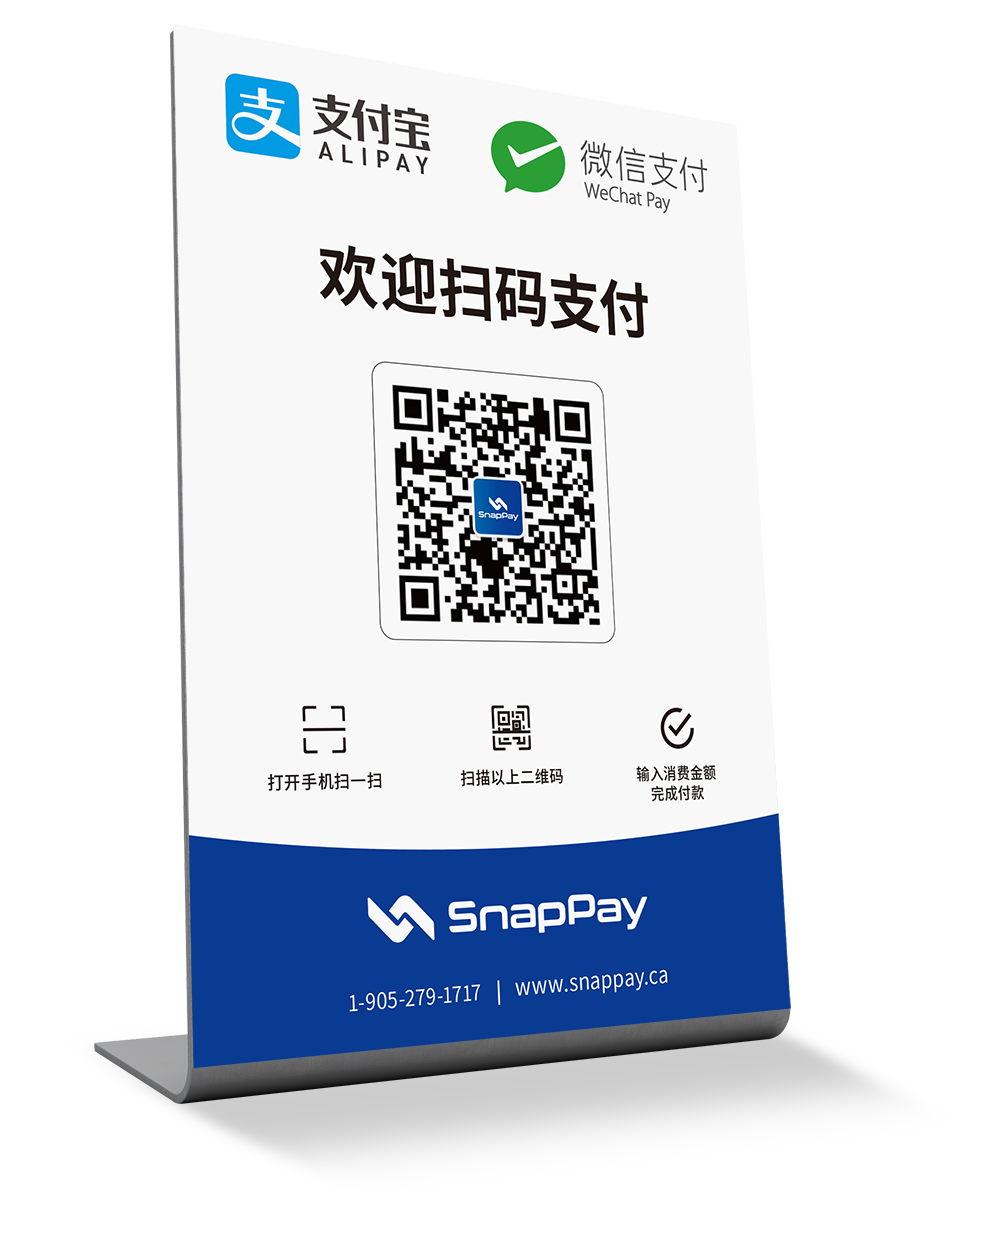 a small table signage that has alipay wechat pay and qr-code on it